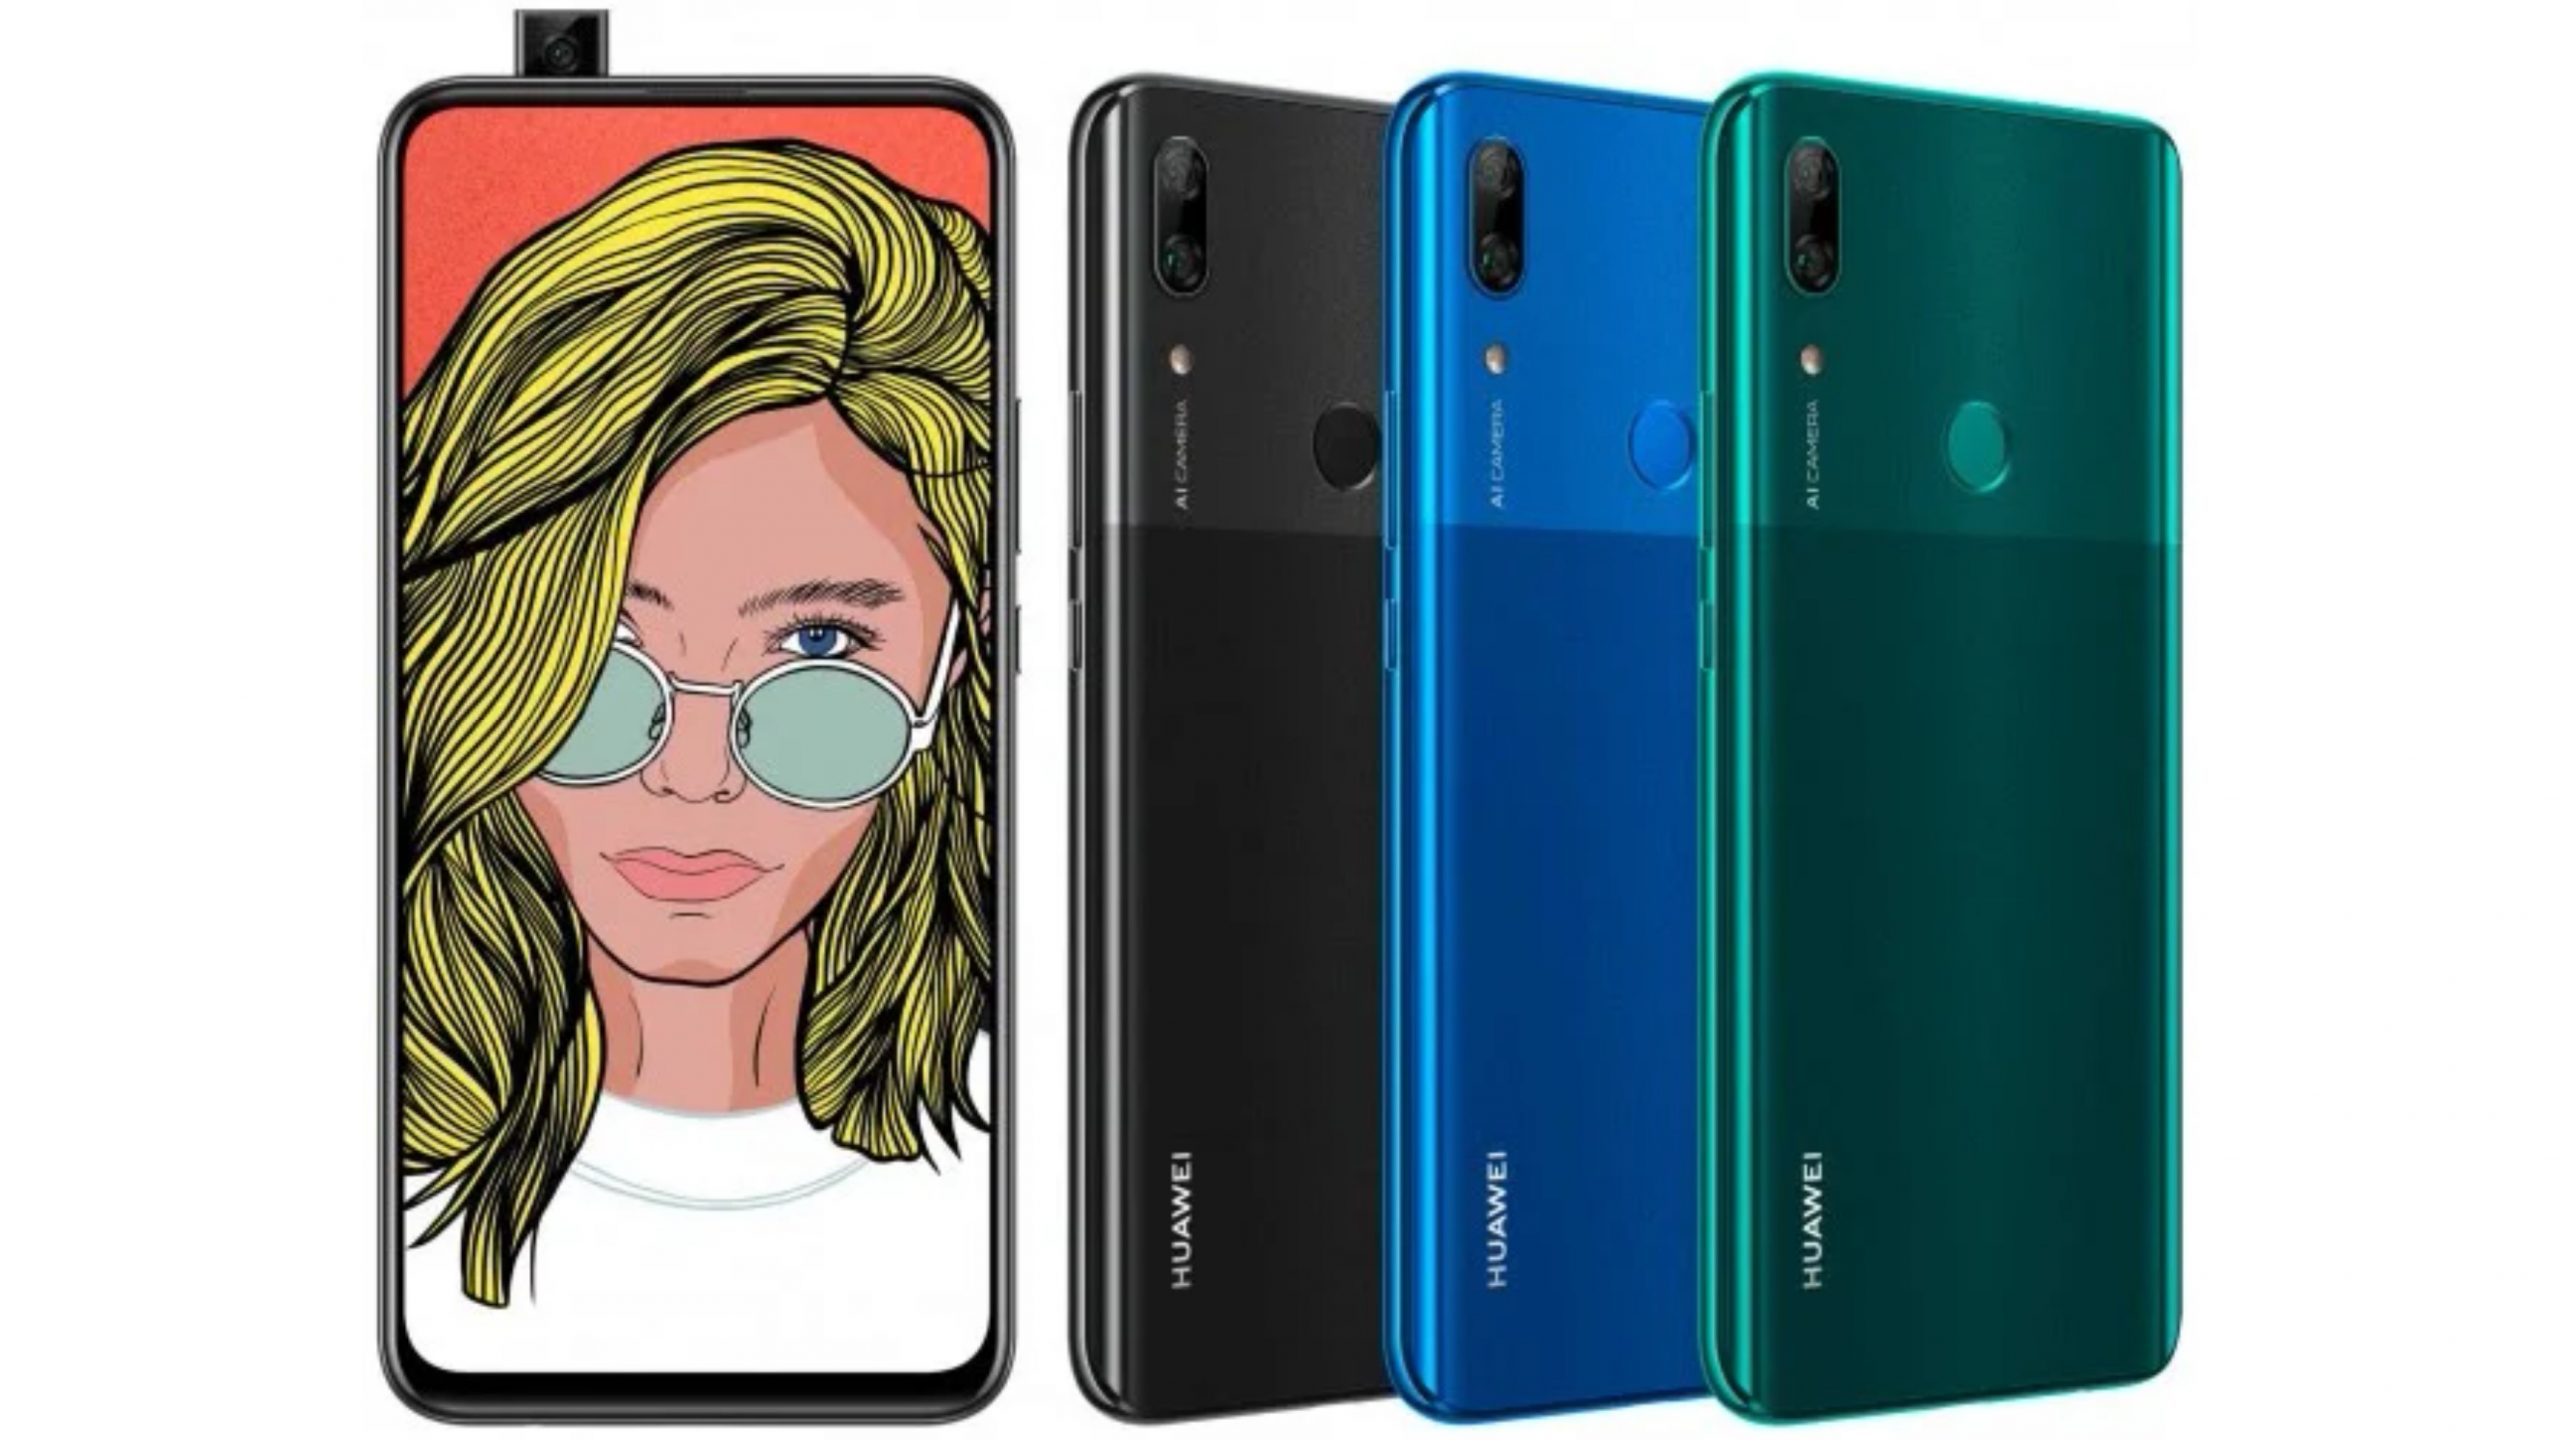 Huawei P Smart Z Price in Pakistan and Specs